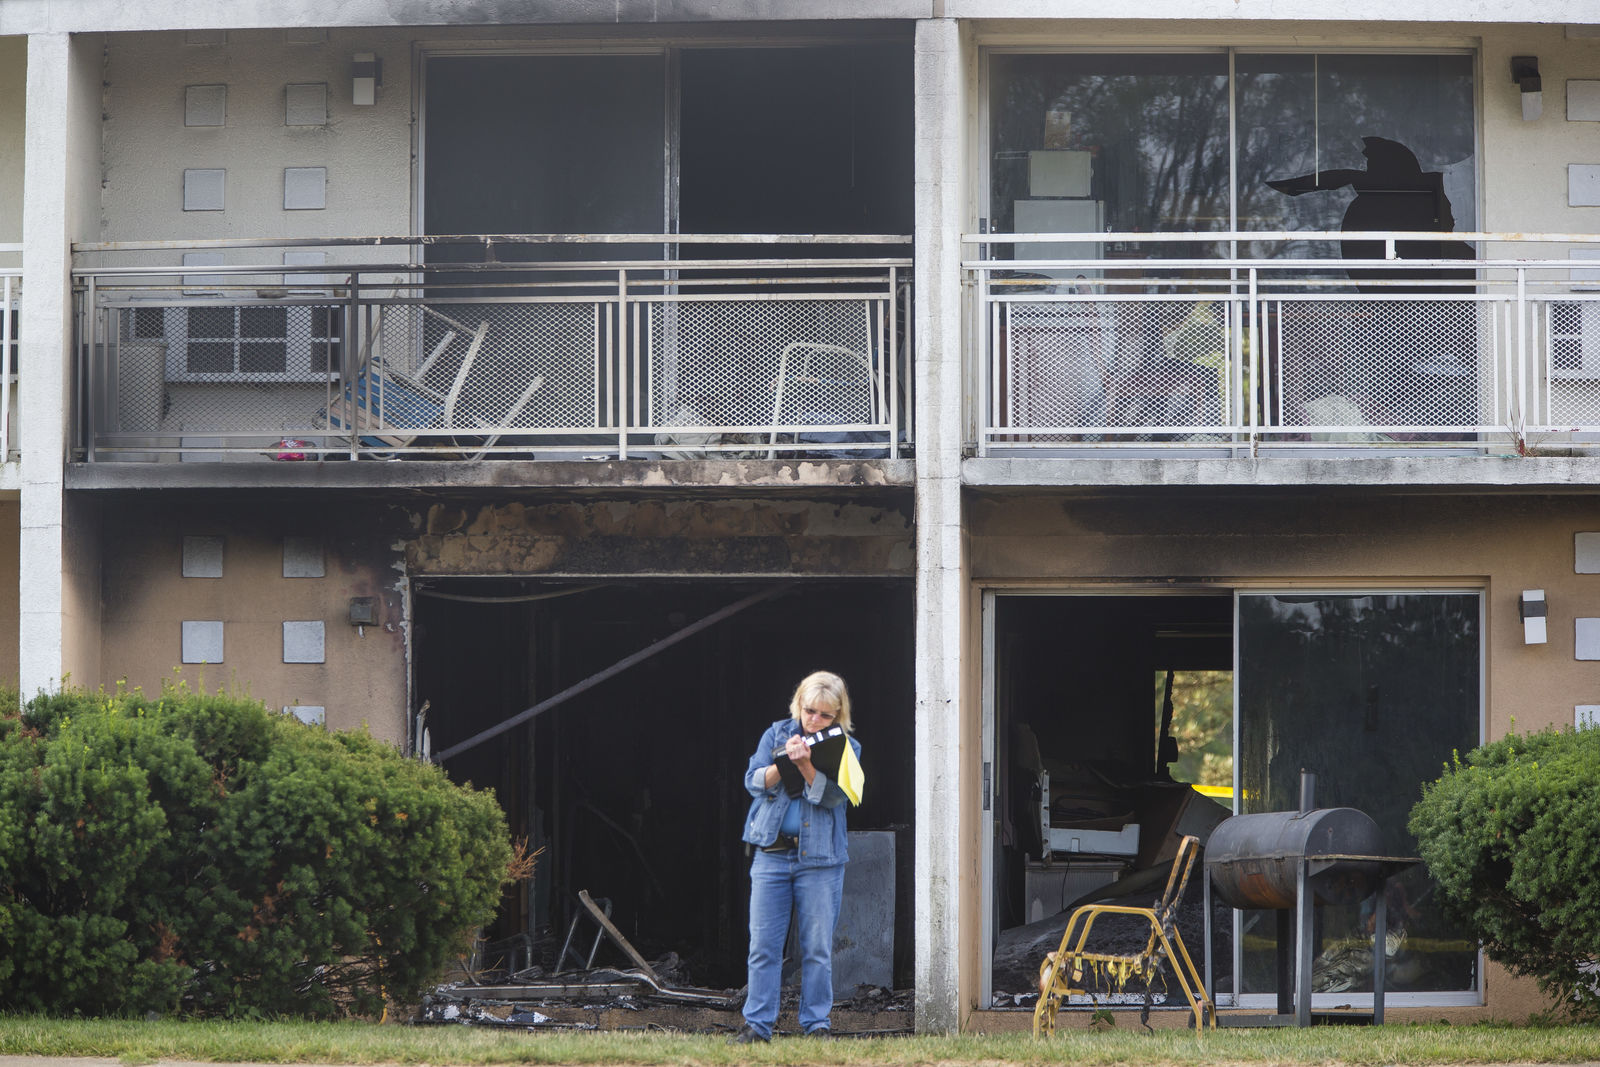 Berrien County Sheriff's Detective Cathy Easton takes notes at the scene of a fire at the Cosmo Extended Stay Motel in Sodus Township, Mich., on Saturday, July 28, 2018.  A fire swept through the southwestern Michigan motel early Saturday, killing several members of the same family, including a woman and her children, authorities said.   (Michael Caterina/South Bend Tribune via AP)